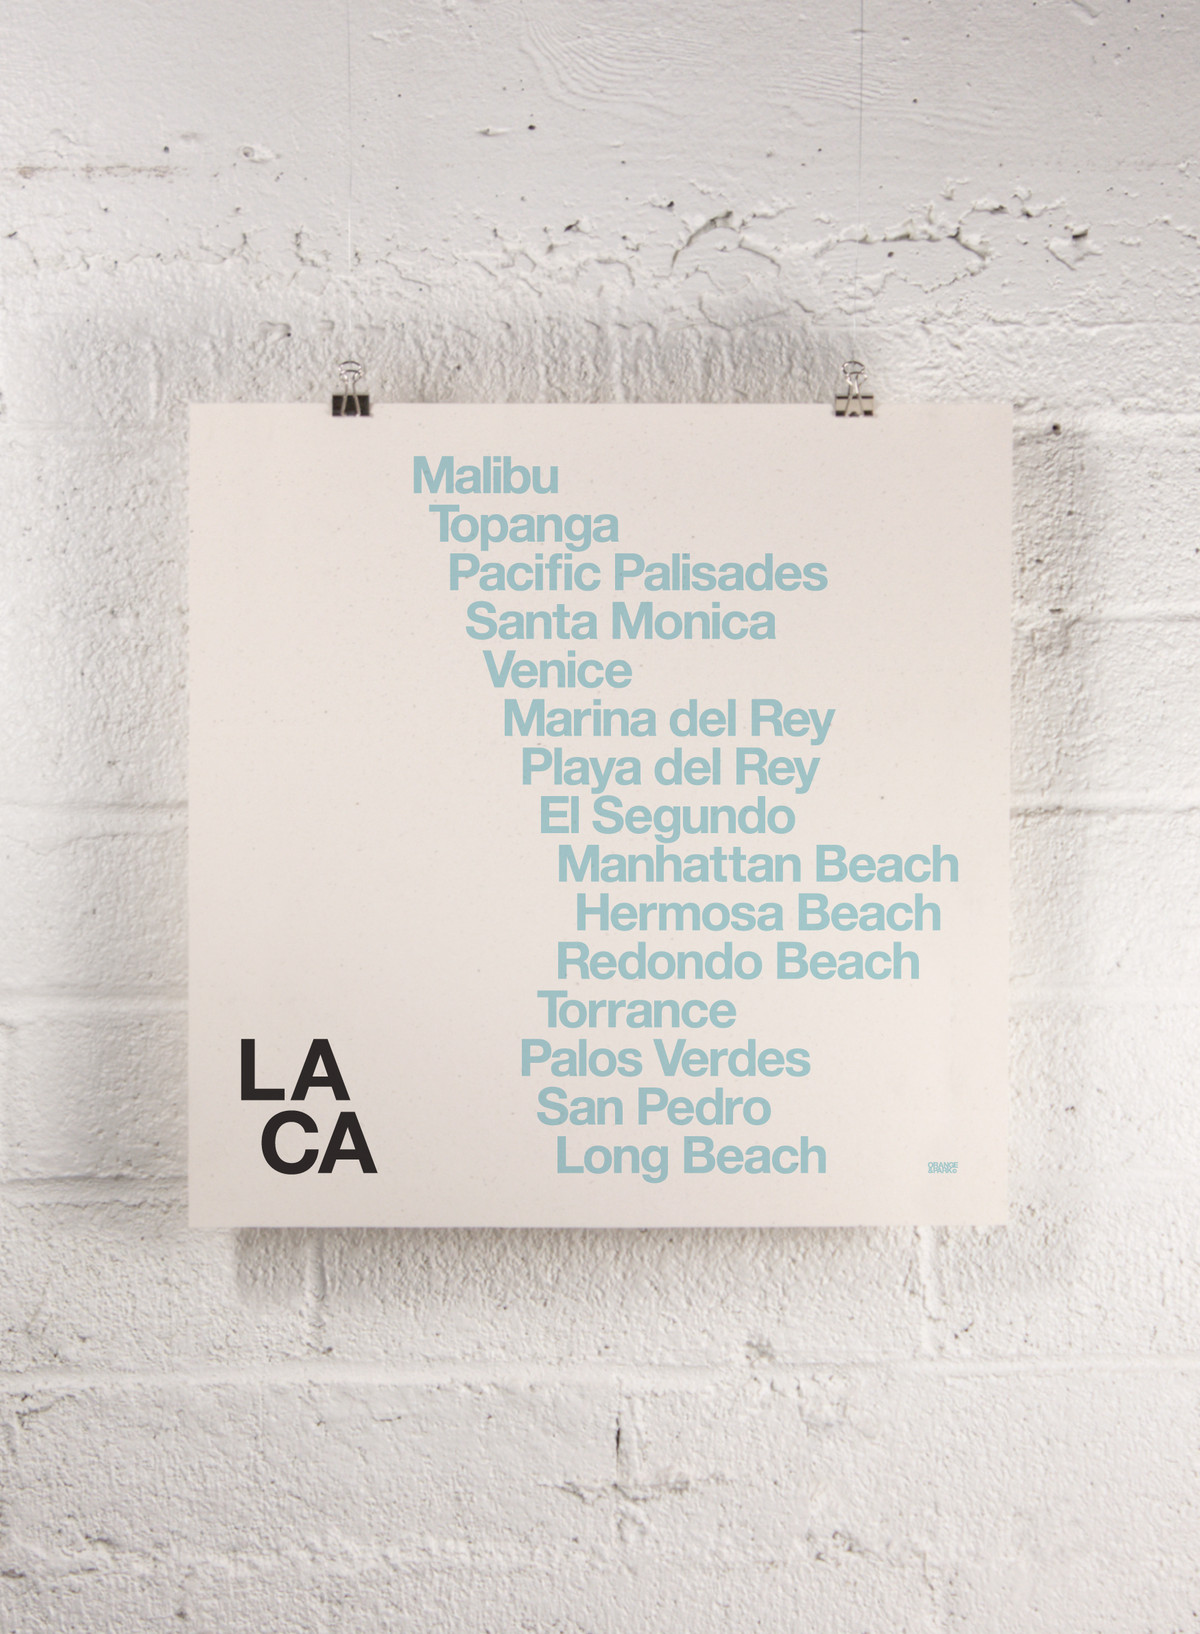 The names of Los Angeles neighborhoods stacked on top of each other. The alignment mirrors the shape of Southern California.